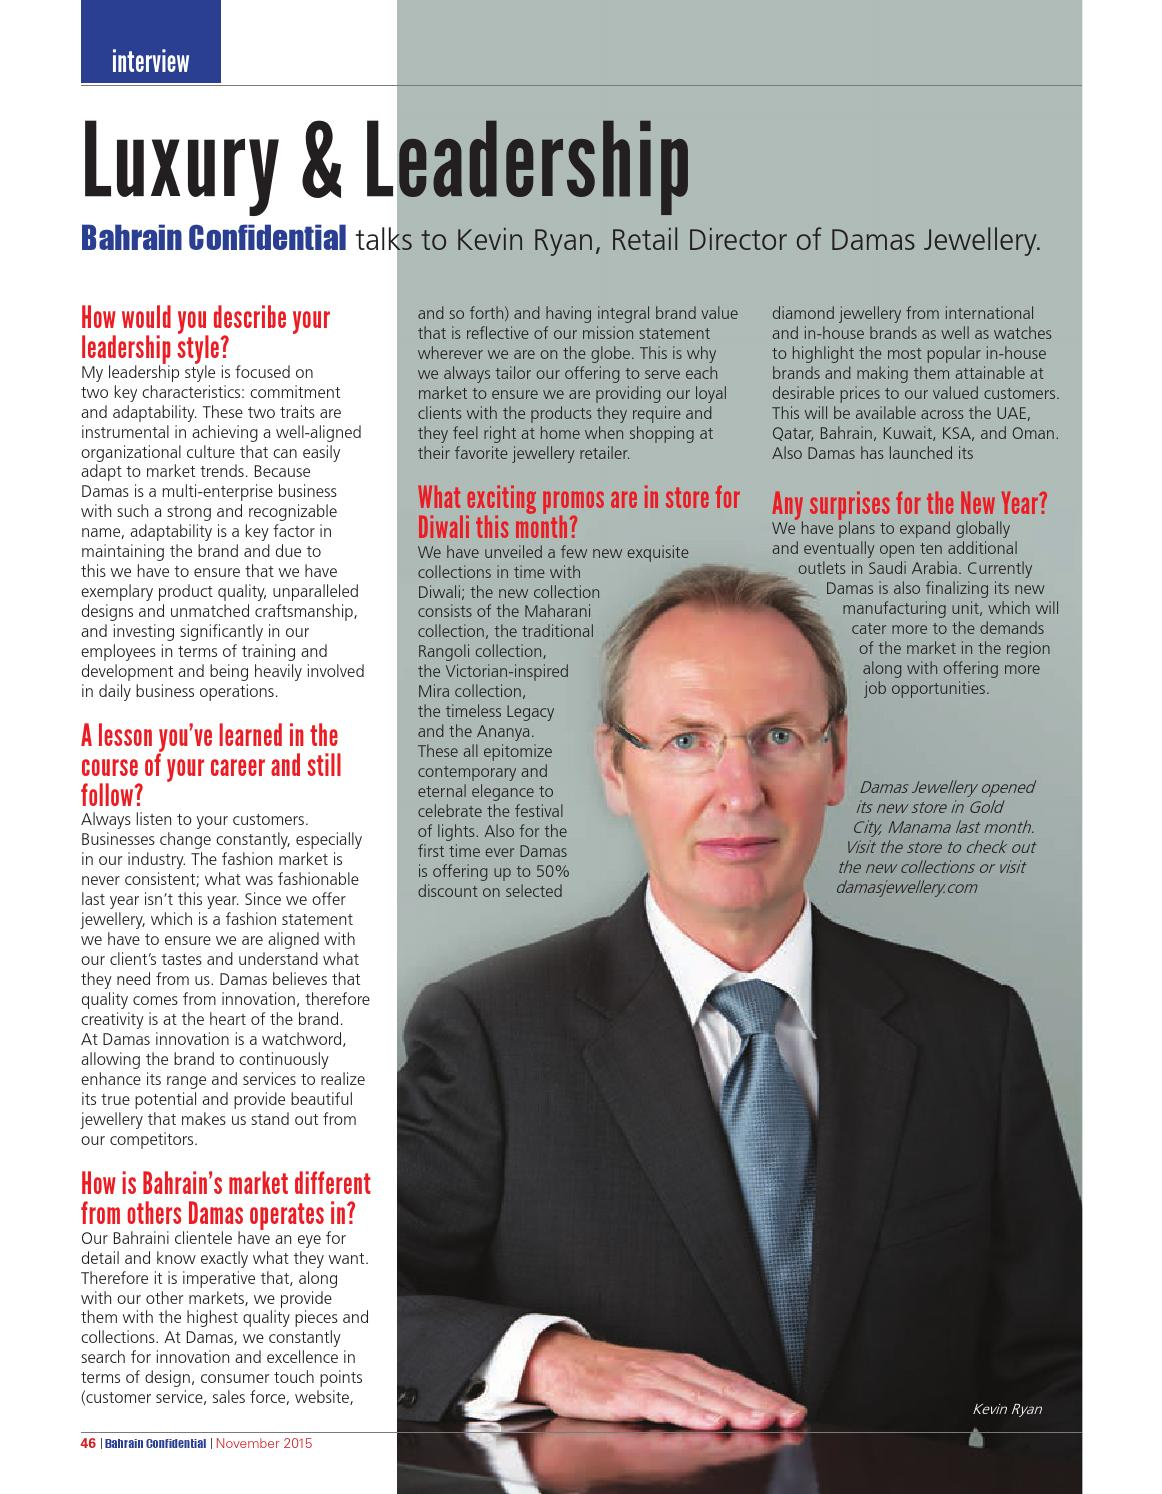 Bahrain Confidential October 2013 issue by Arabian Magazines